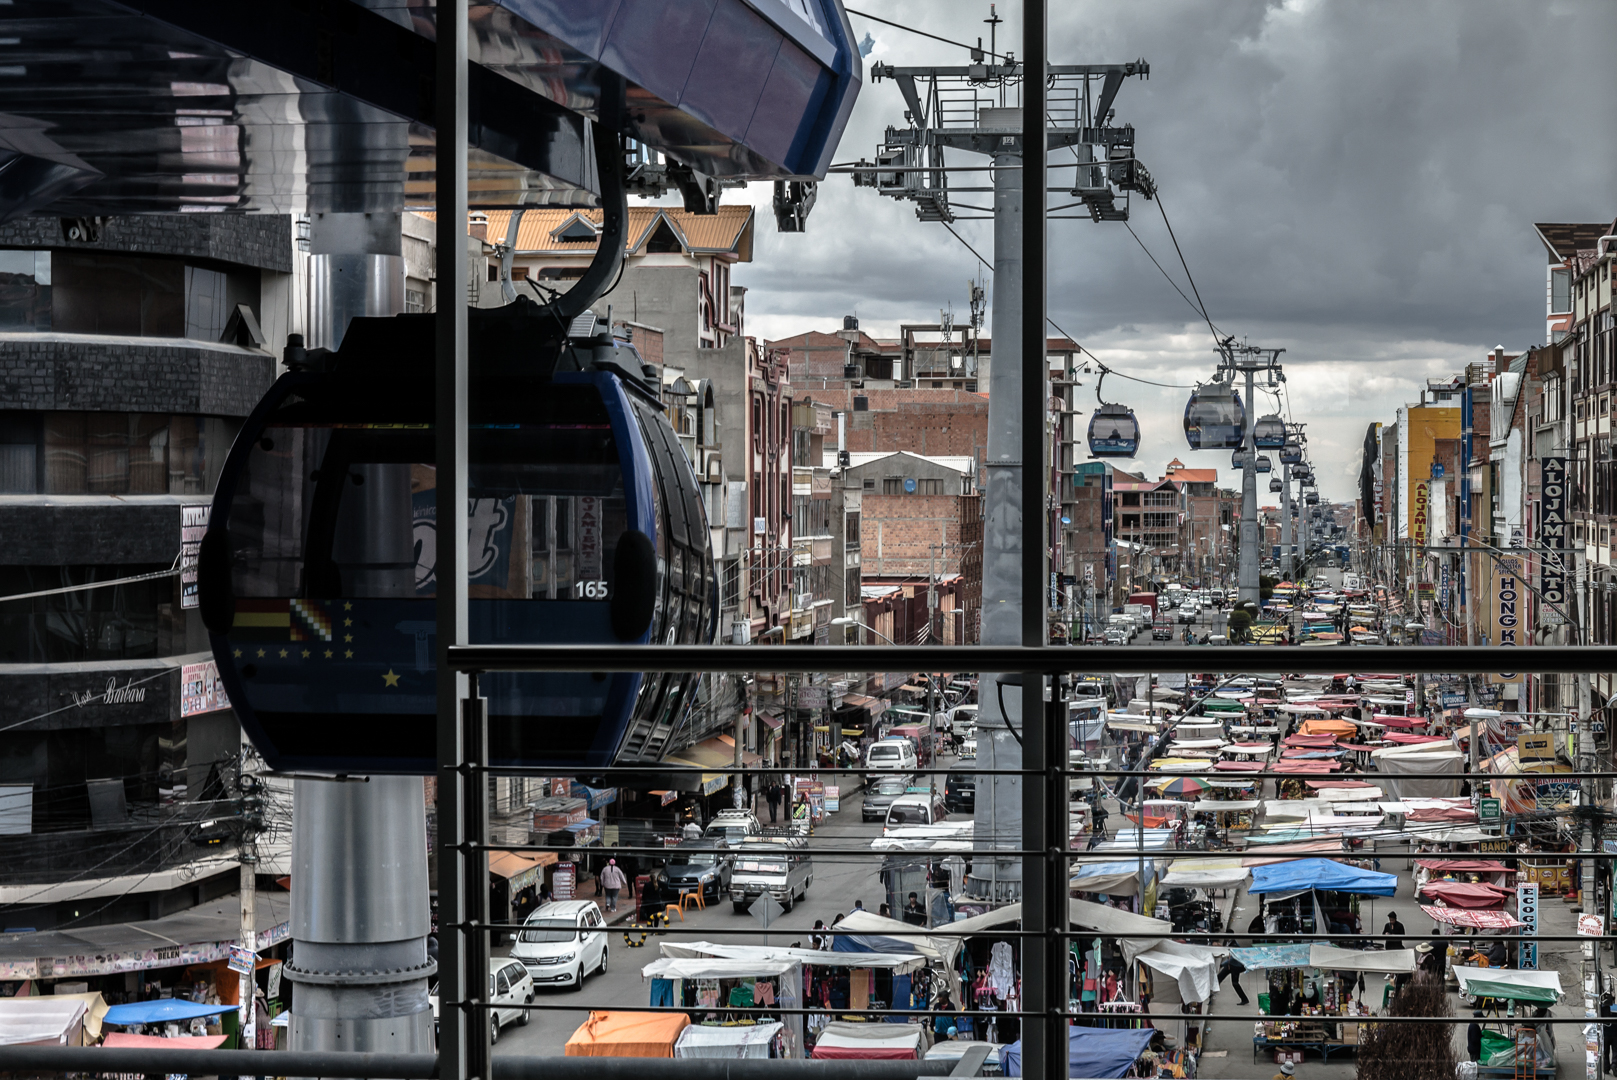 The aerial cable car transit system in Bolivia's second largest city El Alto